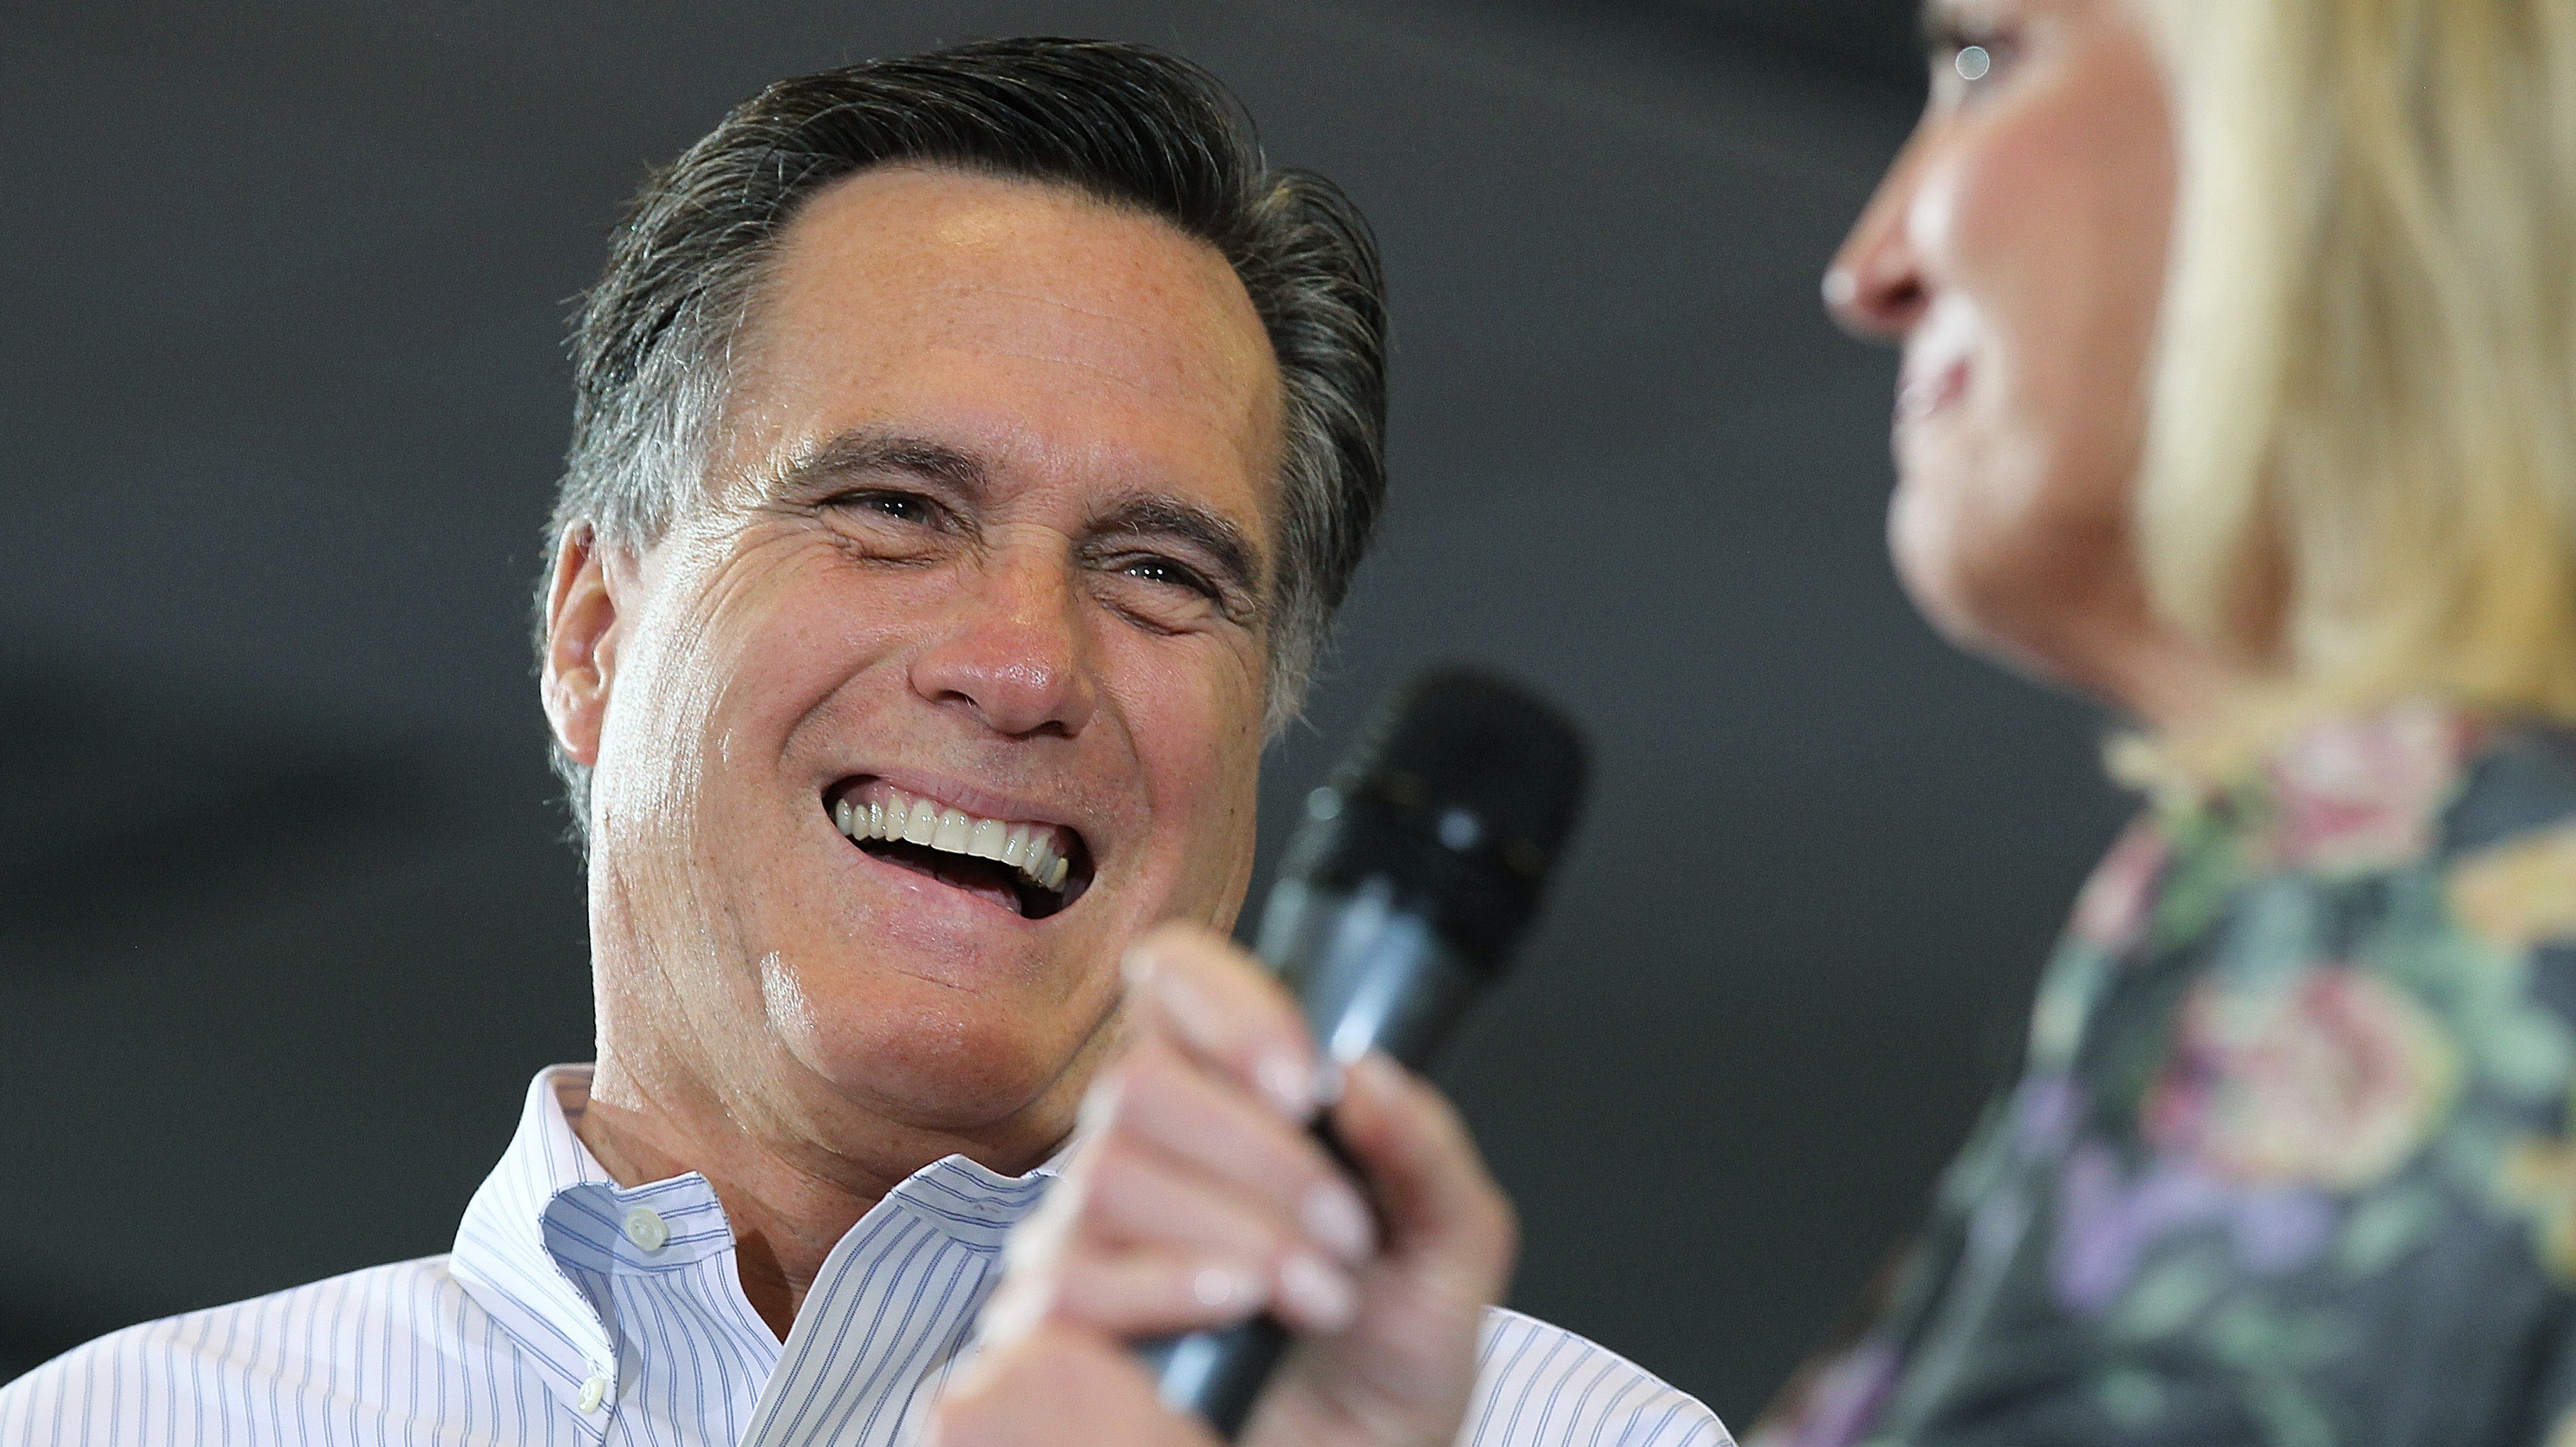 BREAKING: Romney will win Washington caucuses, CNN projects